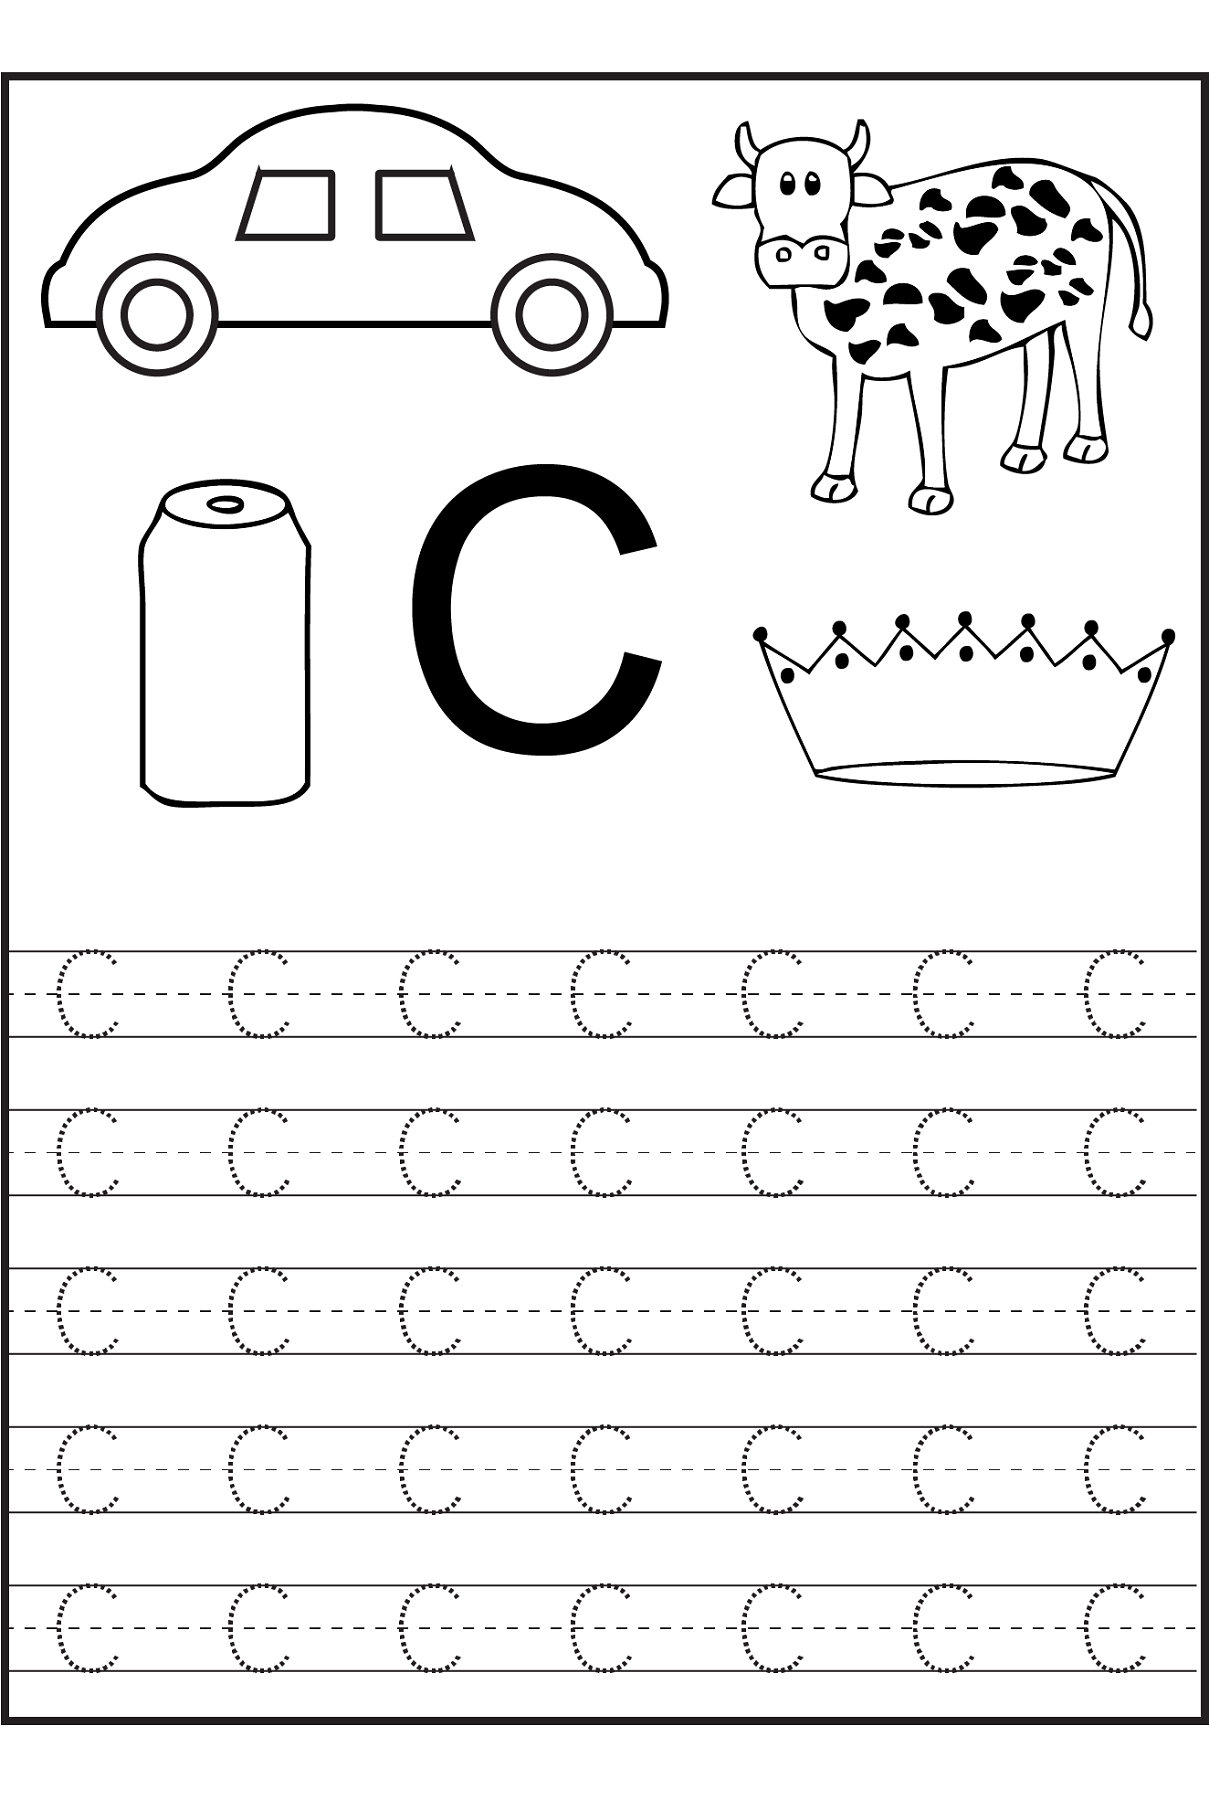 Trace the Letter C Worksheets Activity Shelter – Letter a Tracing Worksheets